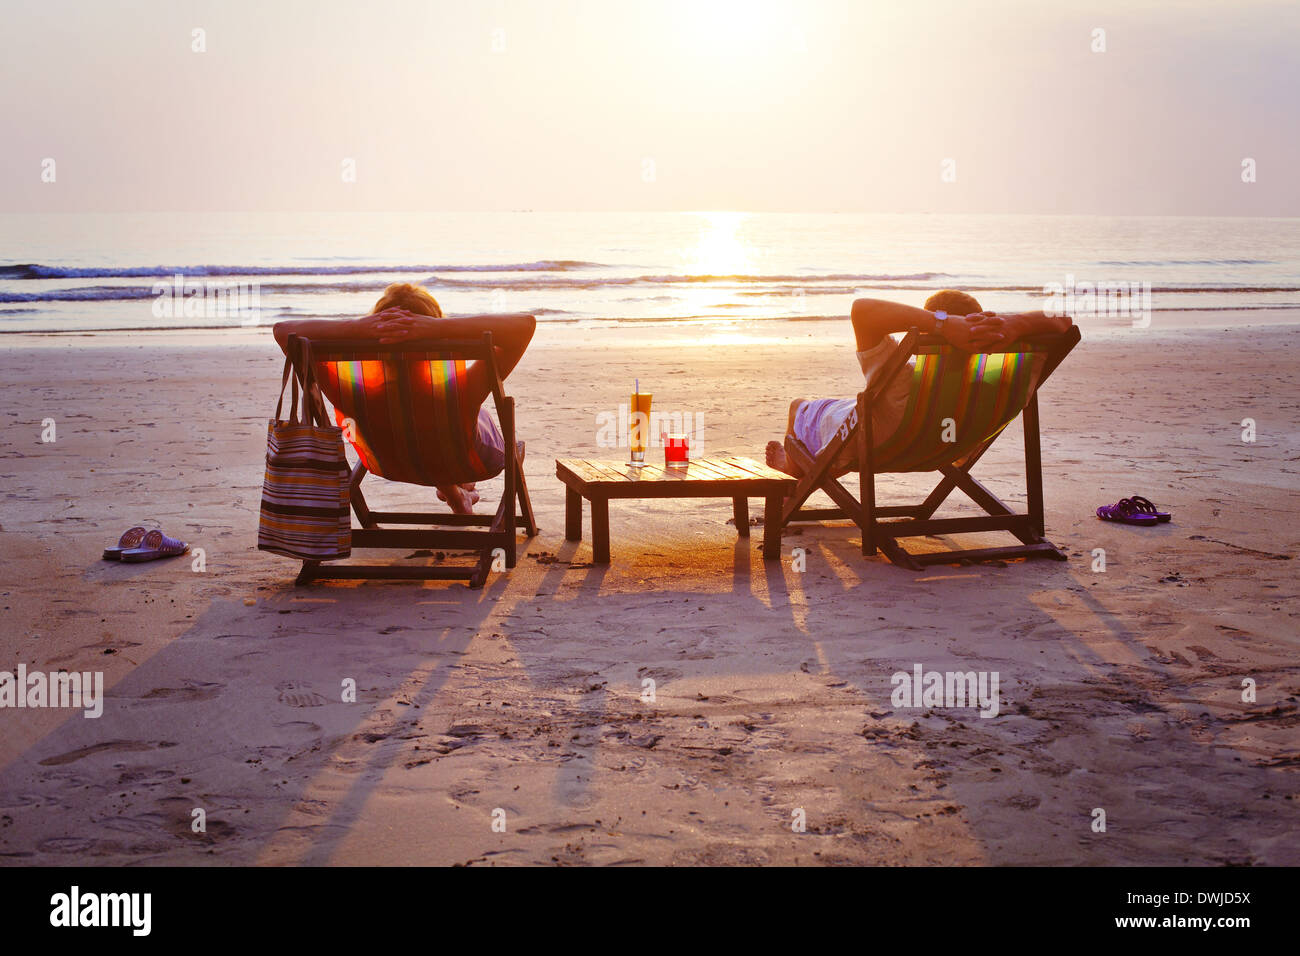 relax on the beach - Stock Image